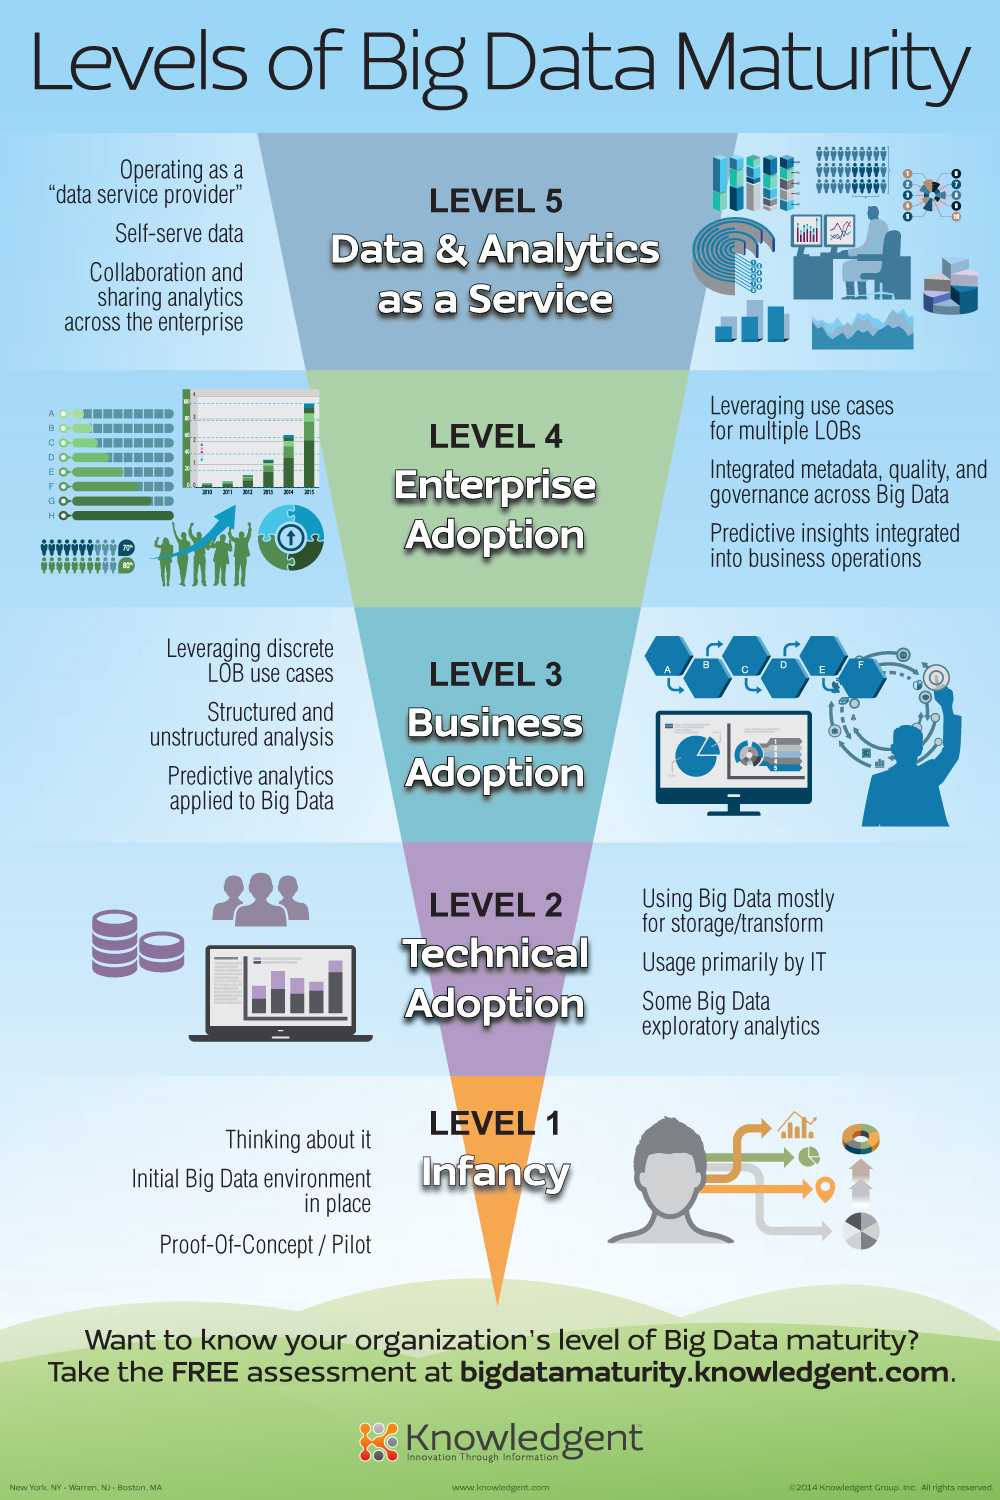 Cloud Infographic: Levels Of Big Data Maturity